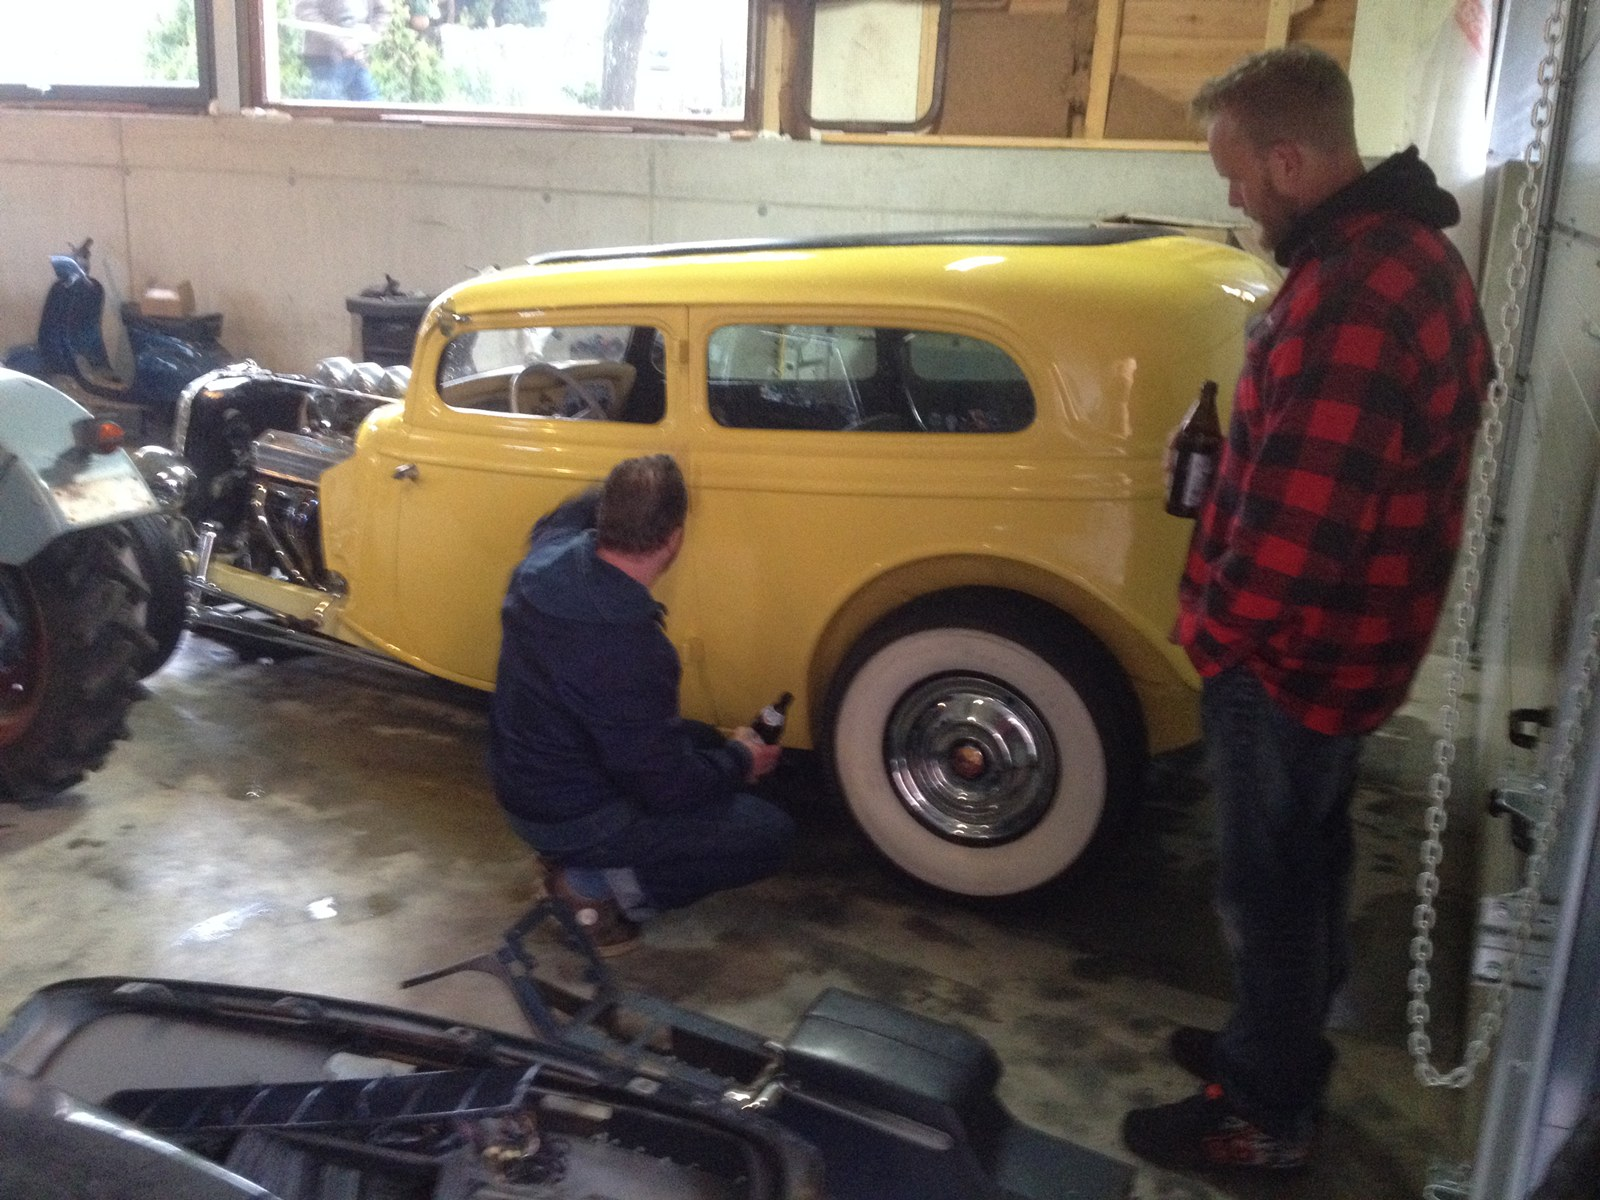 History 1934 ford bonneville style hot rod 5 23 18 for Garage ford bonneville